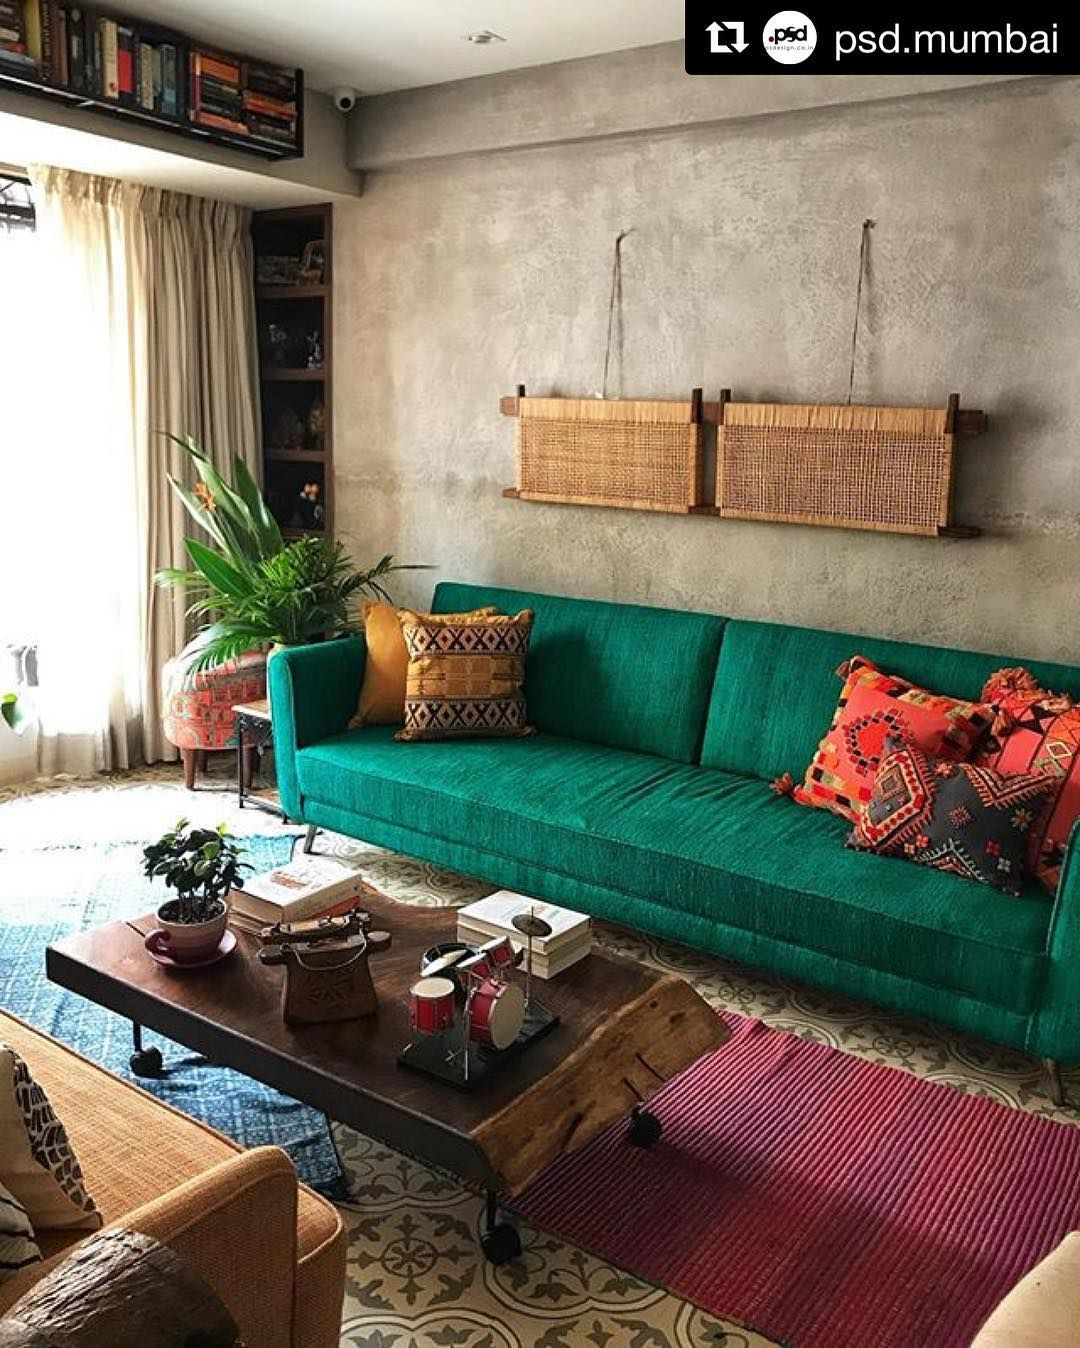 Myheartskippedabeat For This Room Repost Psd Mumbai Get Repost We Are Starting Our Week Living Room Decor Guide Indian Living Rooms Trendy Living Rooms